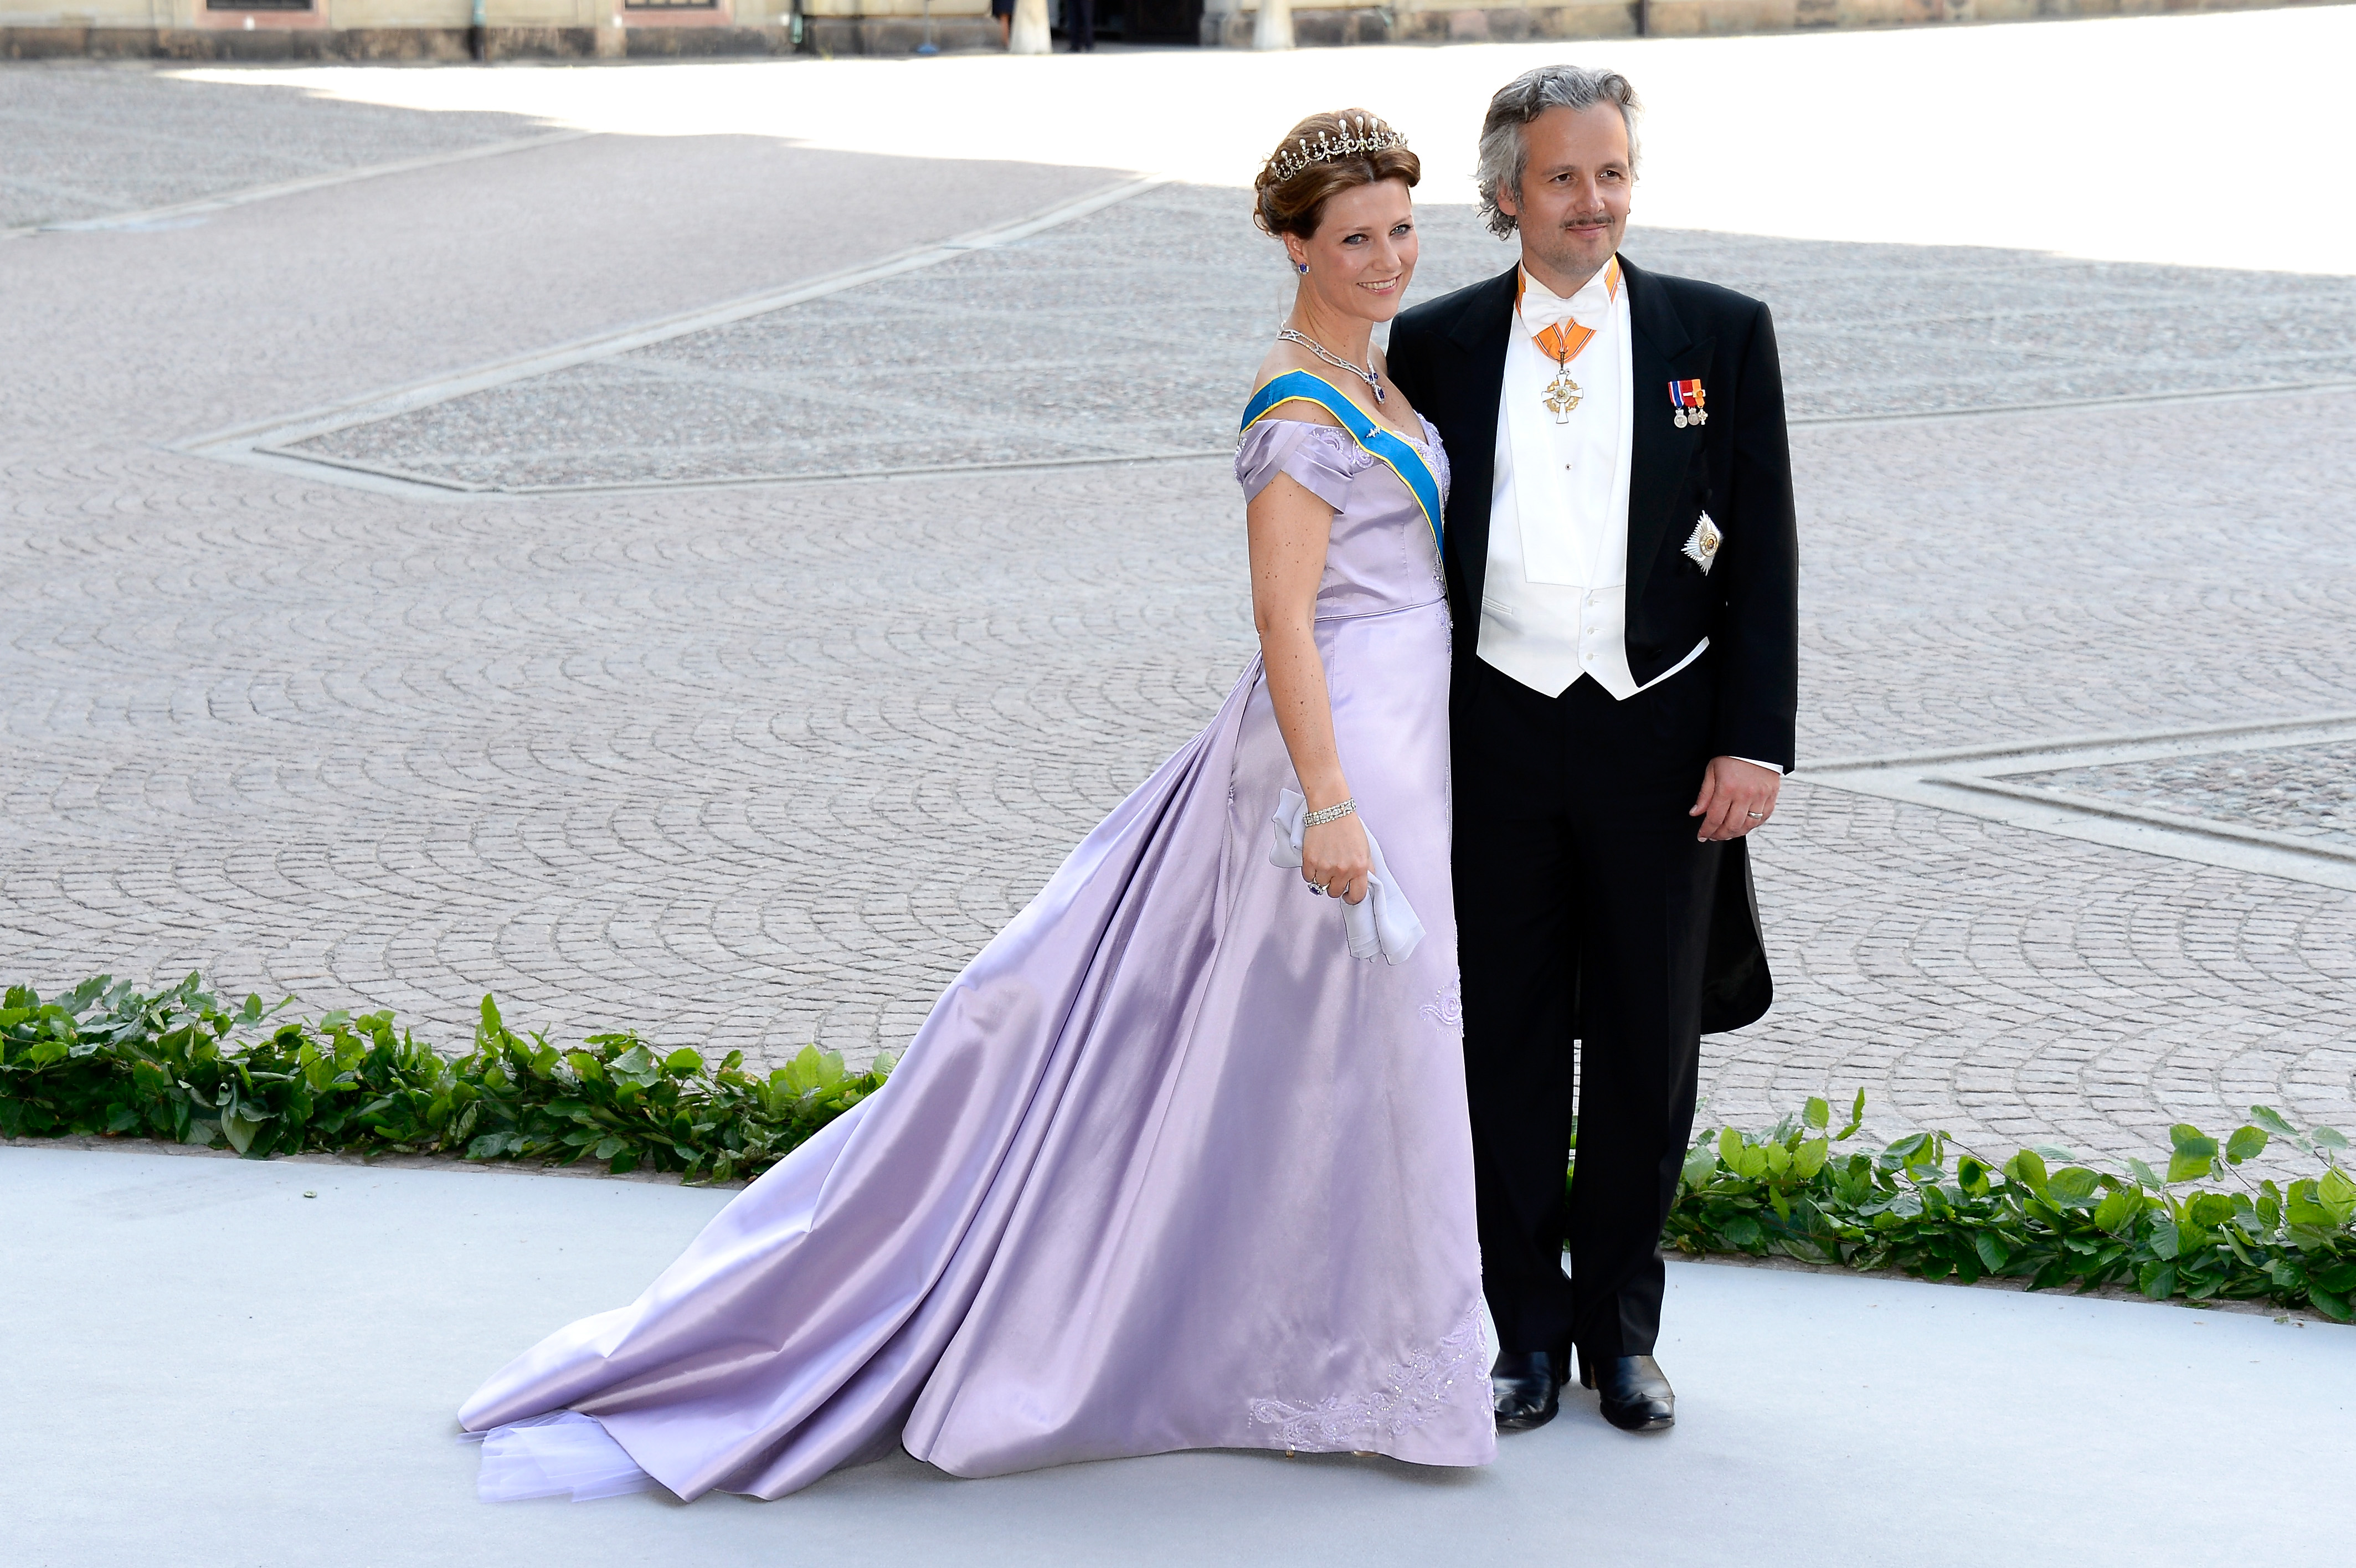 Princess Martha Louise of Norway and Ari Mikael Behn attend the wedding of Princess Madeleine of Sweden and Christopher O'Neill hosted by King Carl Gustaf XIV and Queen Silvia at The Royal Palace on June 8, 2013 in Stockholm, Sweden.